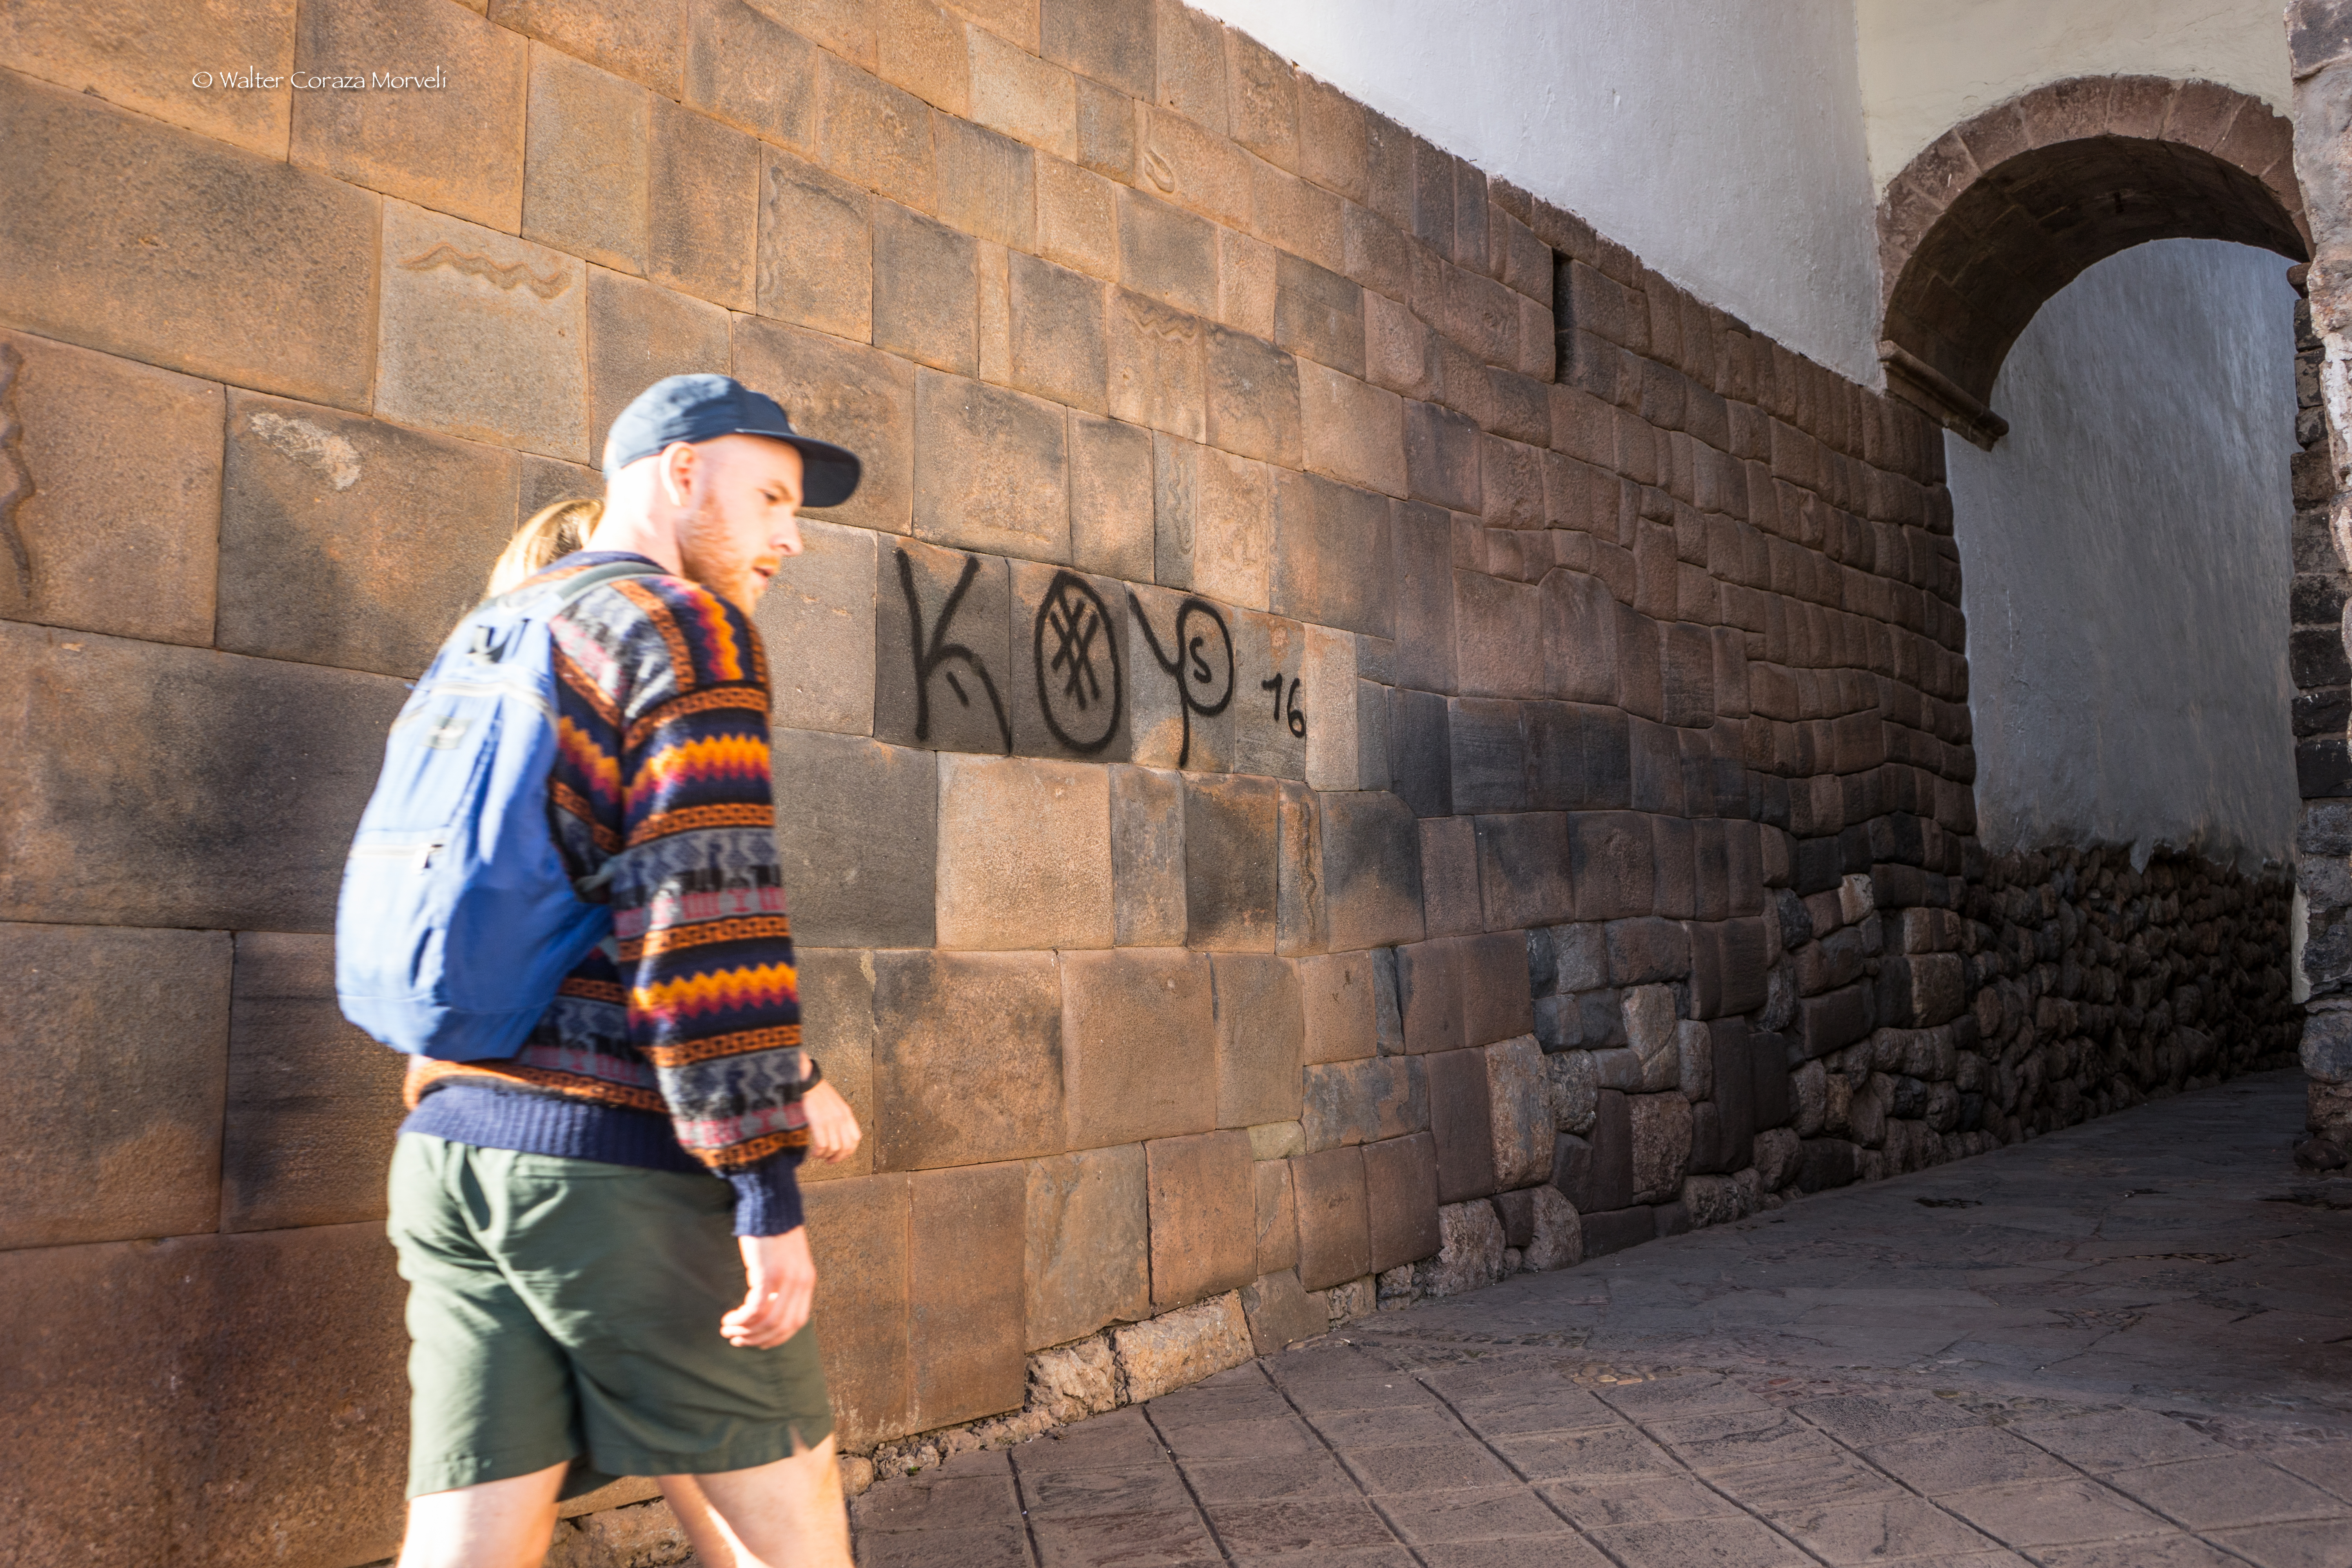 Cusco Suffered an Attack on its cultural Heritage (Walter Coraza Morveli)